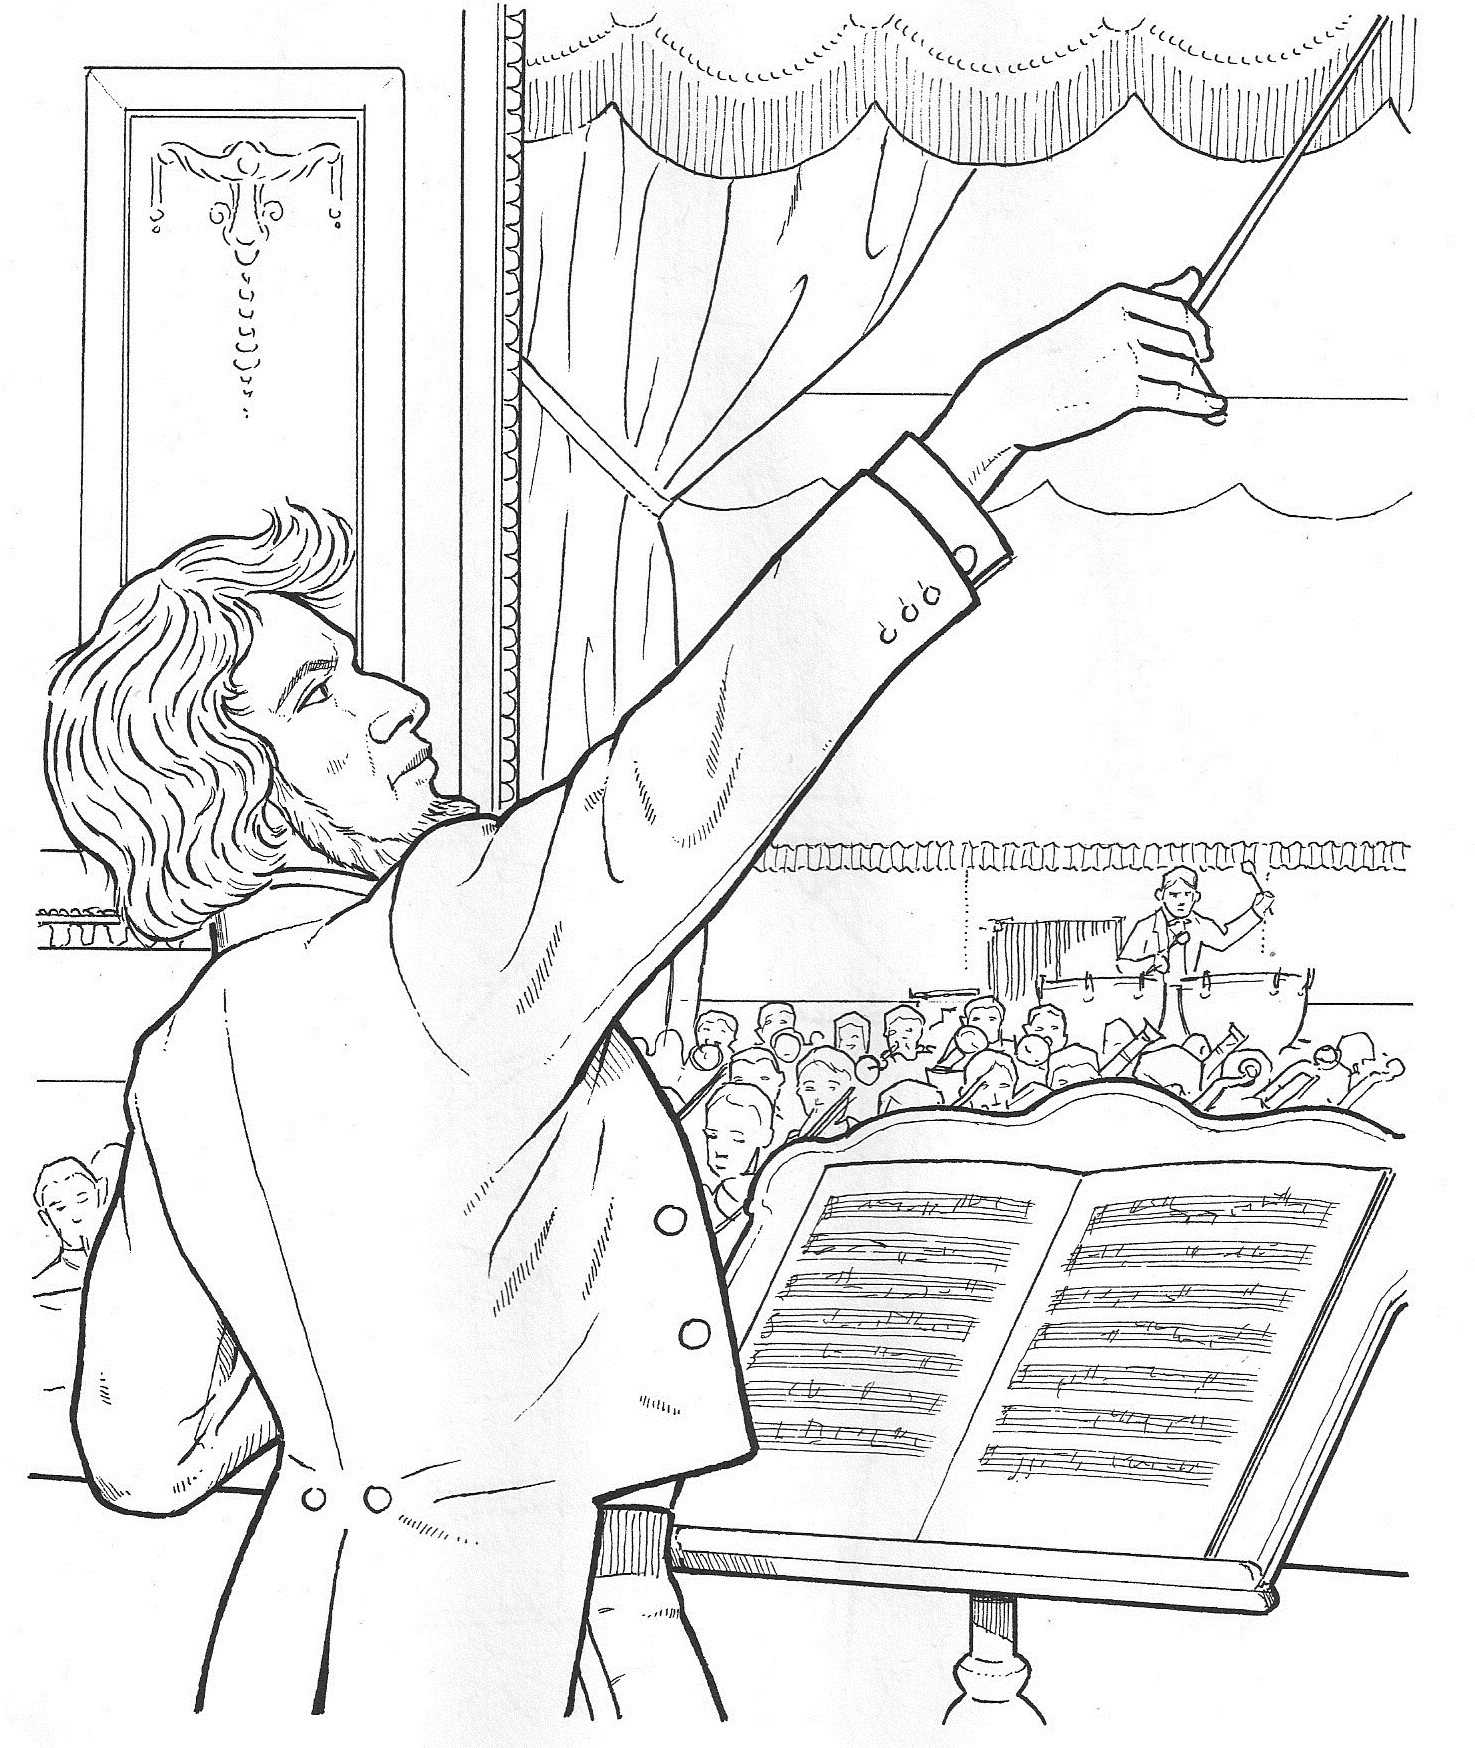 Composer Coloring Pages at GetDrawings | Free download |Composers Coloring Pages